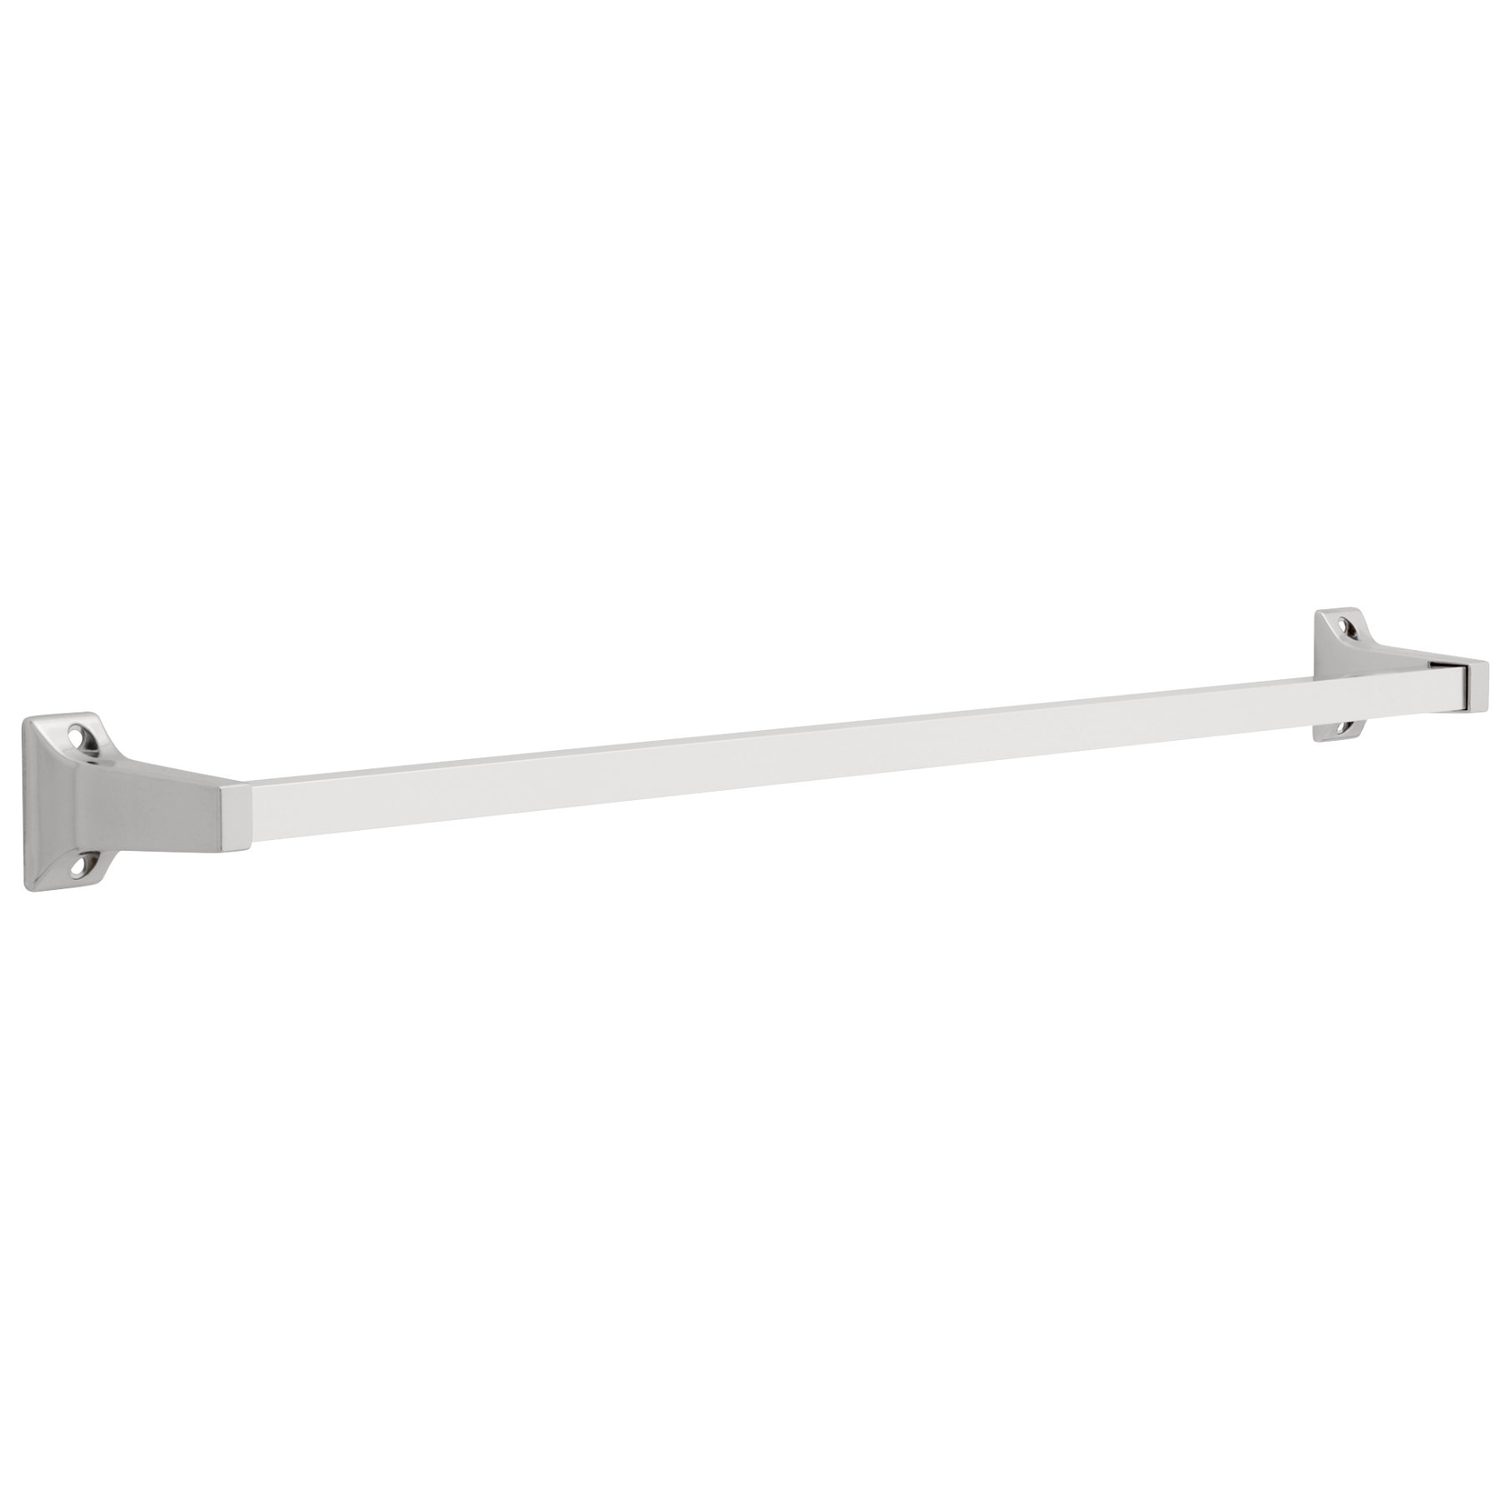 Franklin Brass  Centura  Chrome  Towel Bar  24 in. L Aluminum